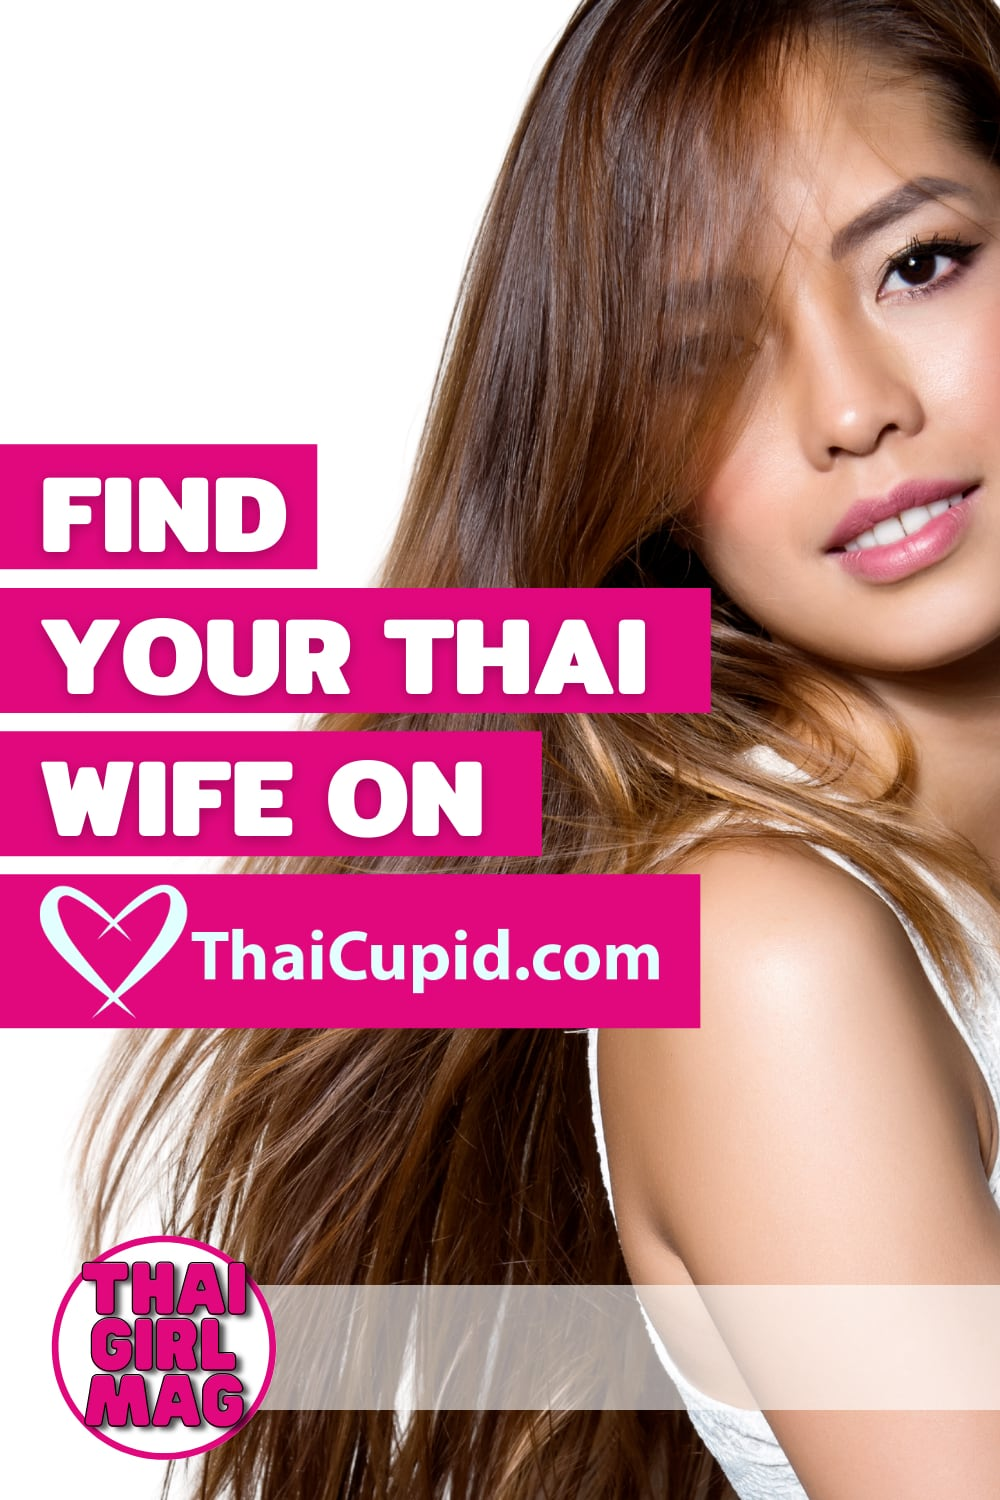 Thaicupid find your Thai wife banner by Thai Girl Mag